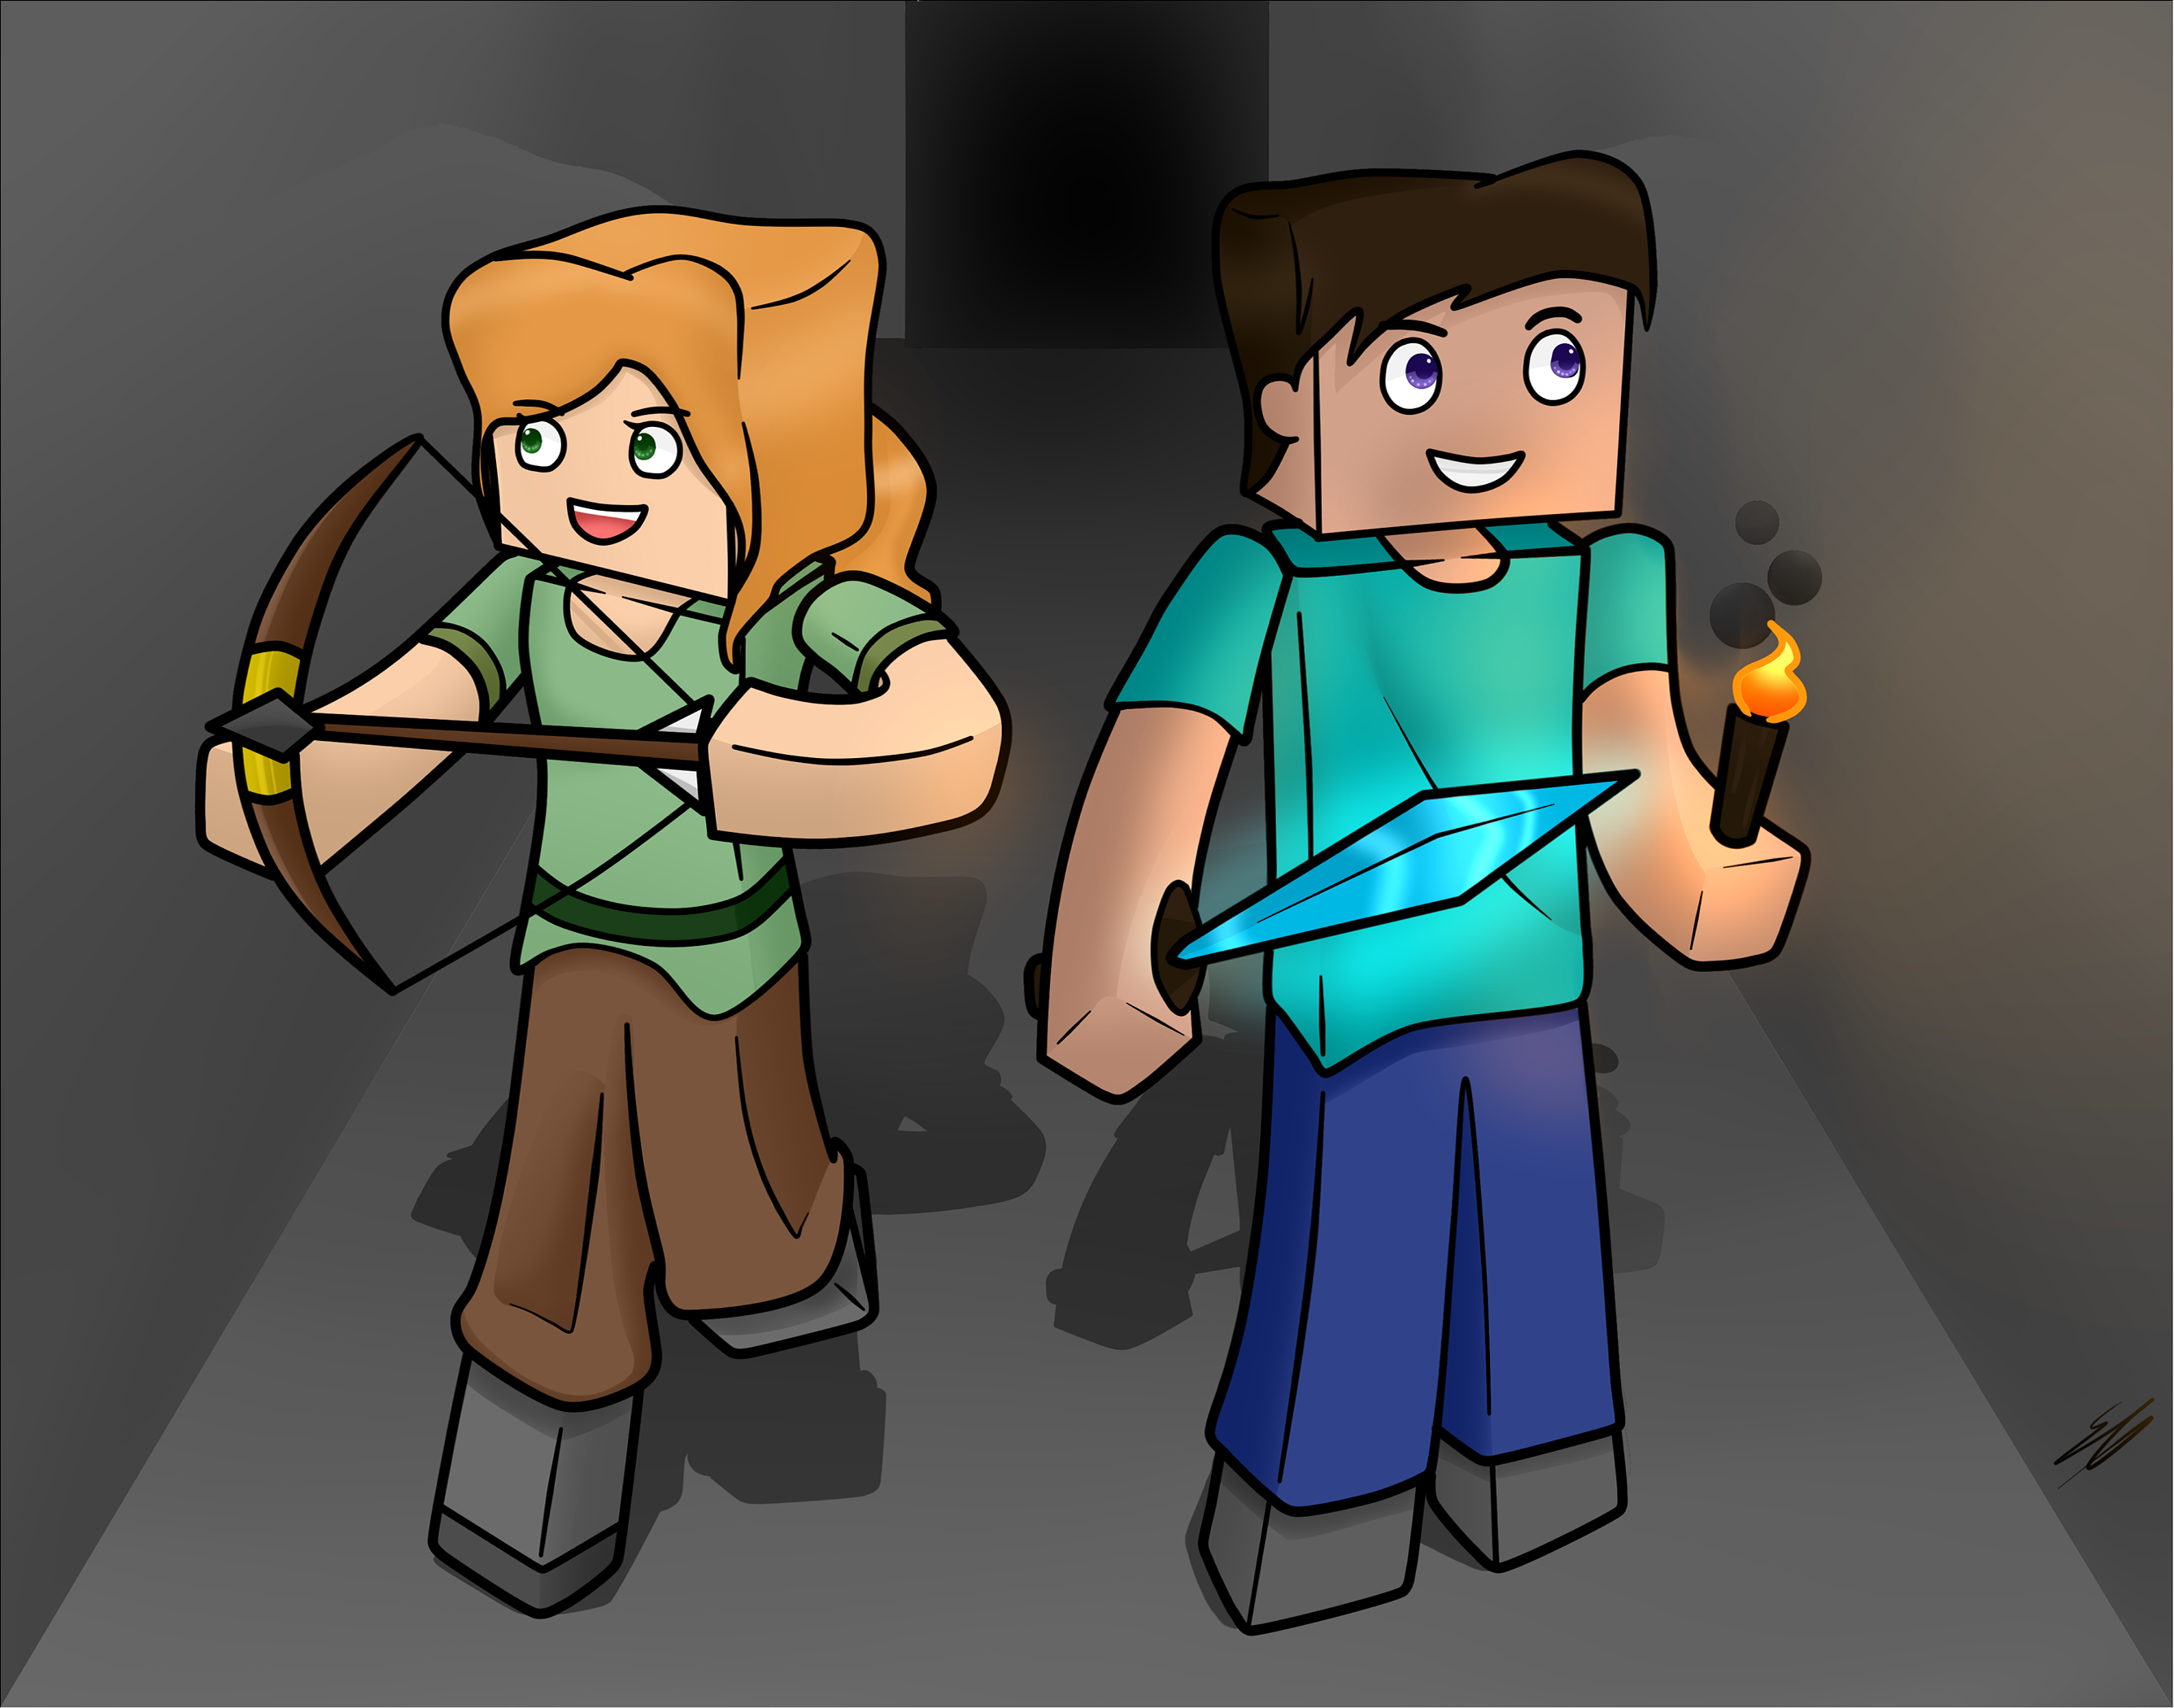 Image Result For Minecraft Steve And Alex Kissing Minecraft Anime Minecraft Steve Minecraft Comics